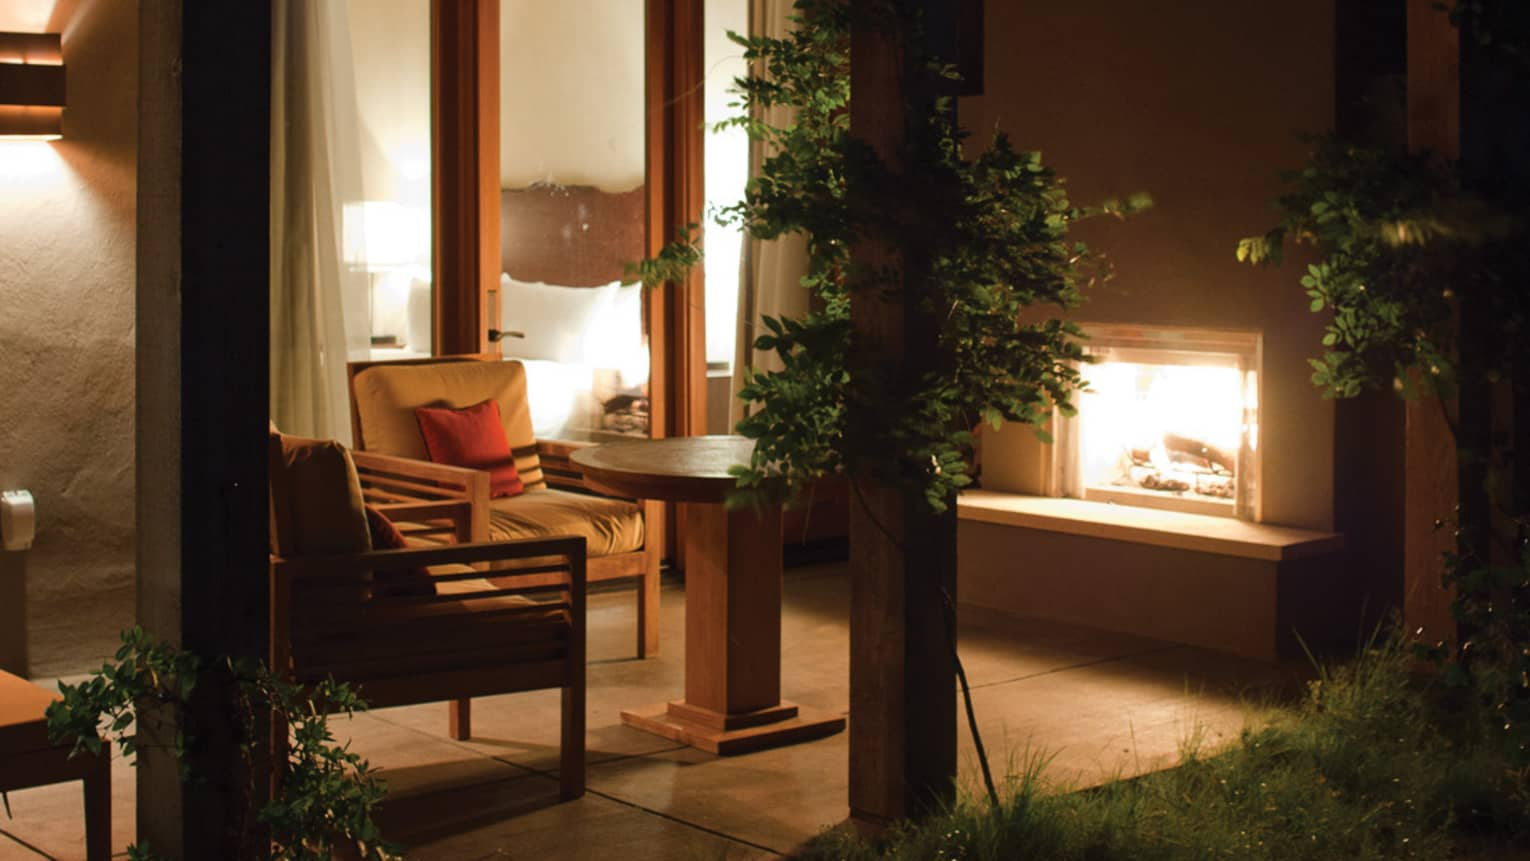 Casita patio chairs, wood beams, outdoor fireplace at night